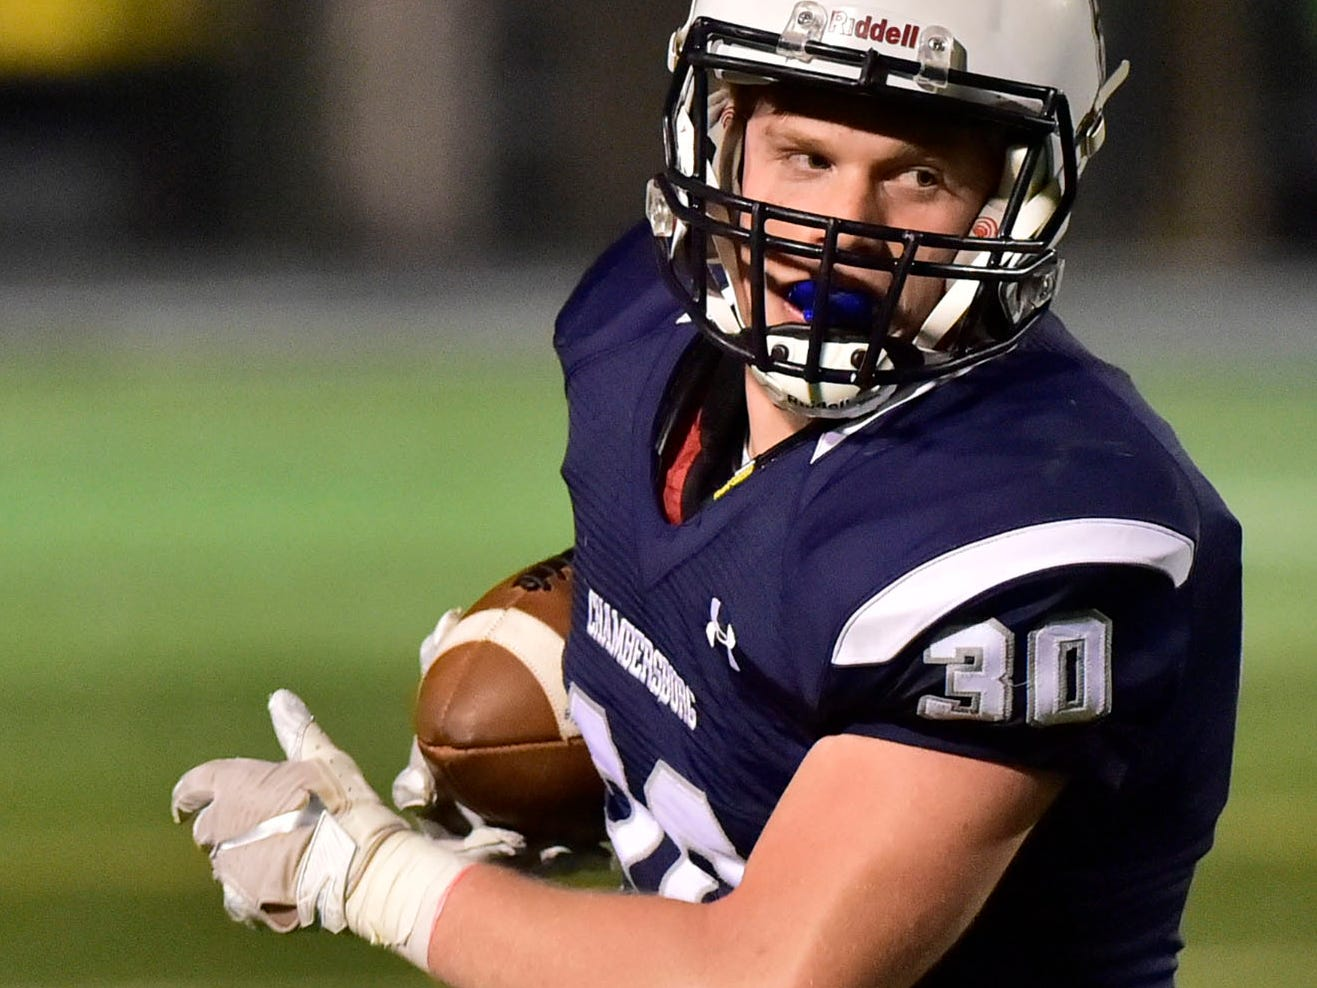 Chambersburg's Tanner Hunt runs the ball for the Trojans. Chambersburg lost to Central Dauphin 35-14 in PIAA football on Friday, Oct. 19, 2018.